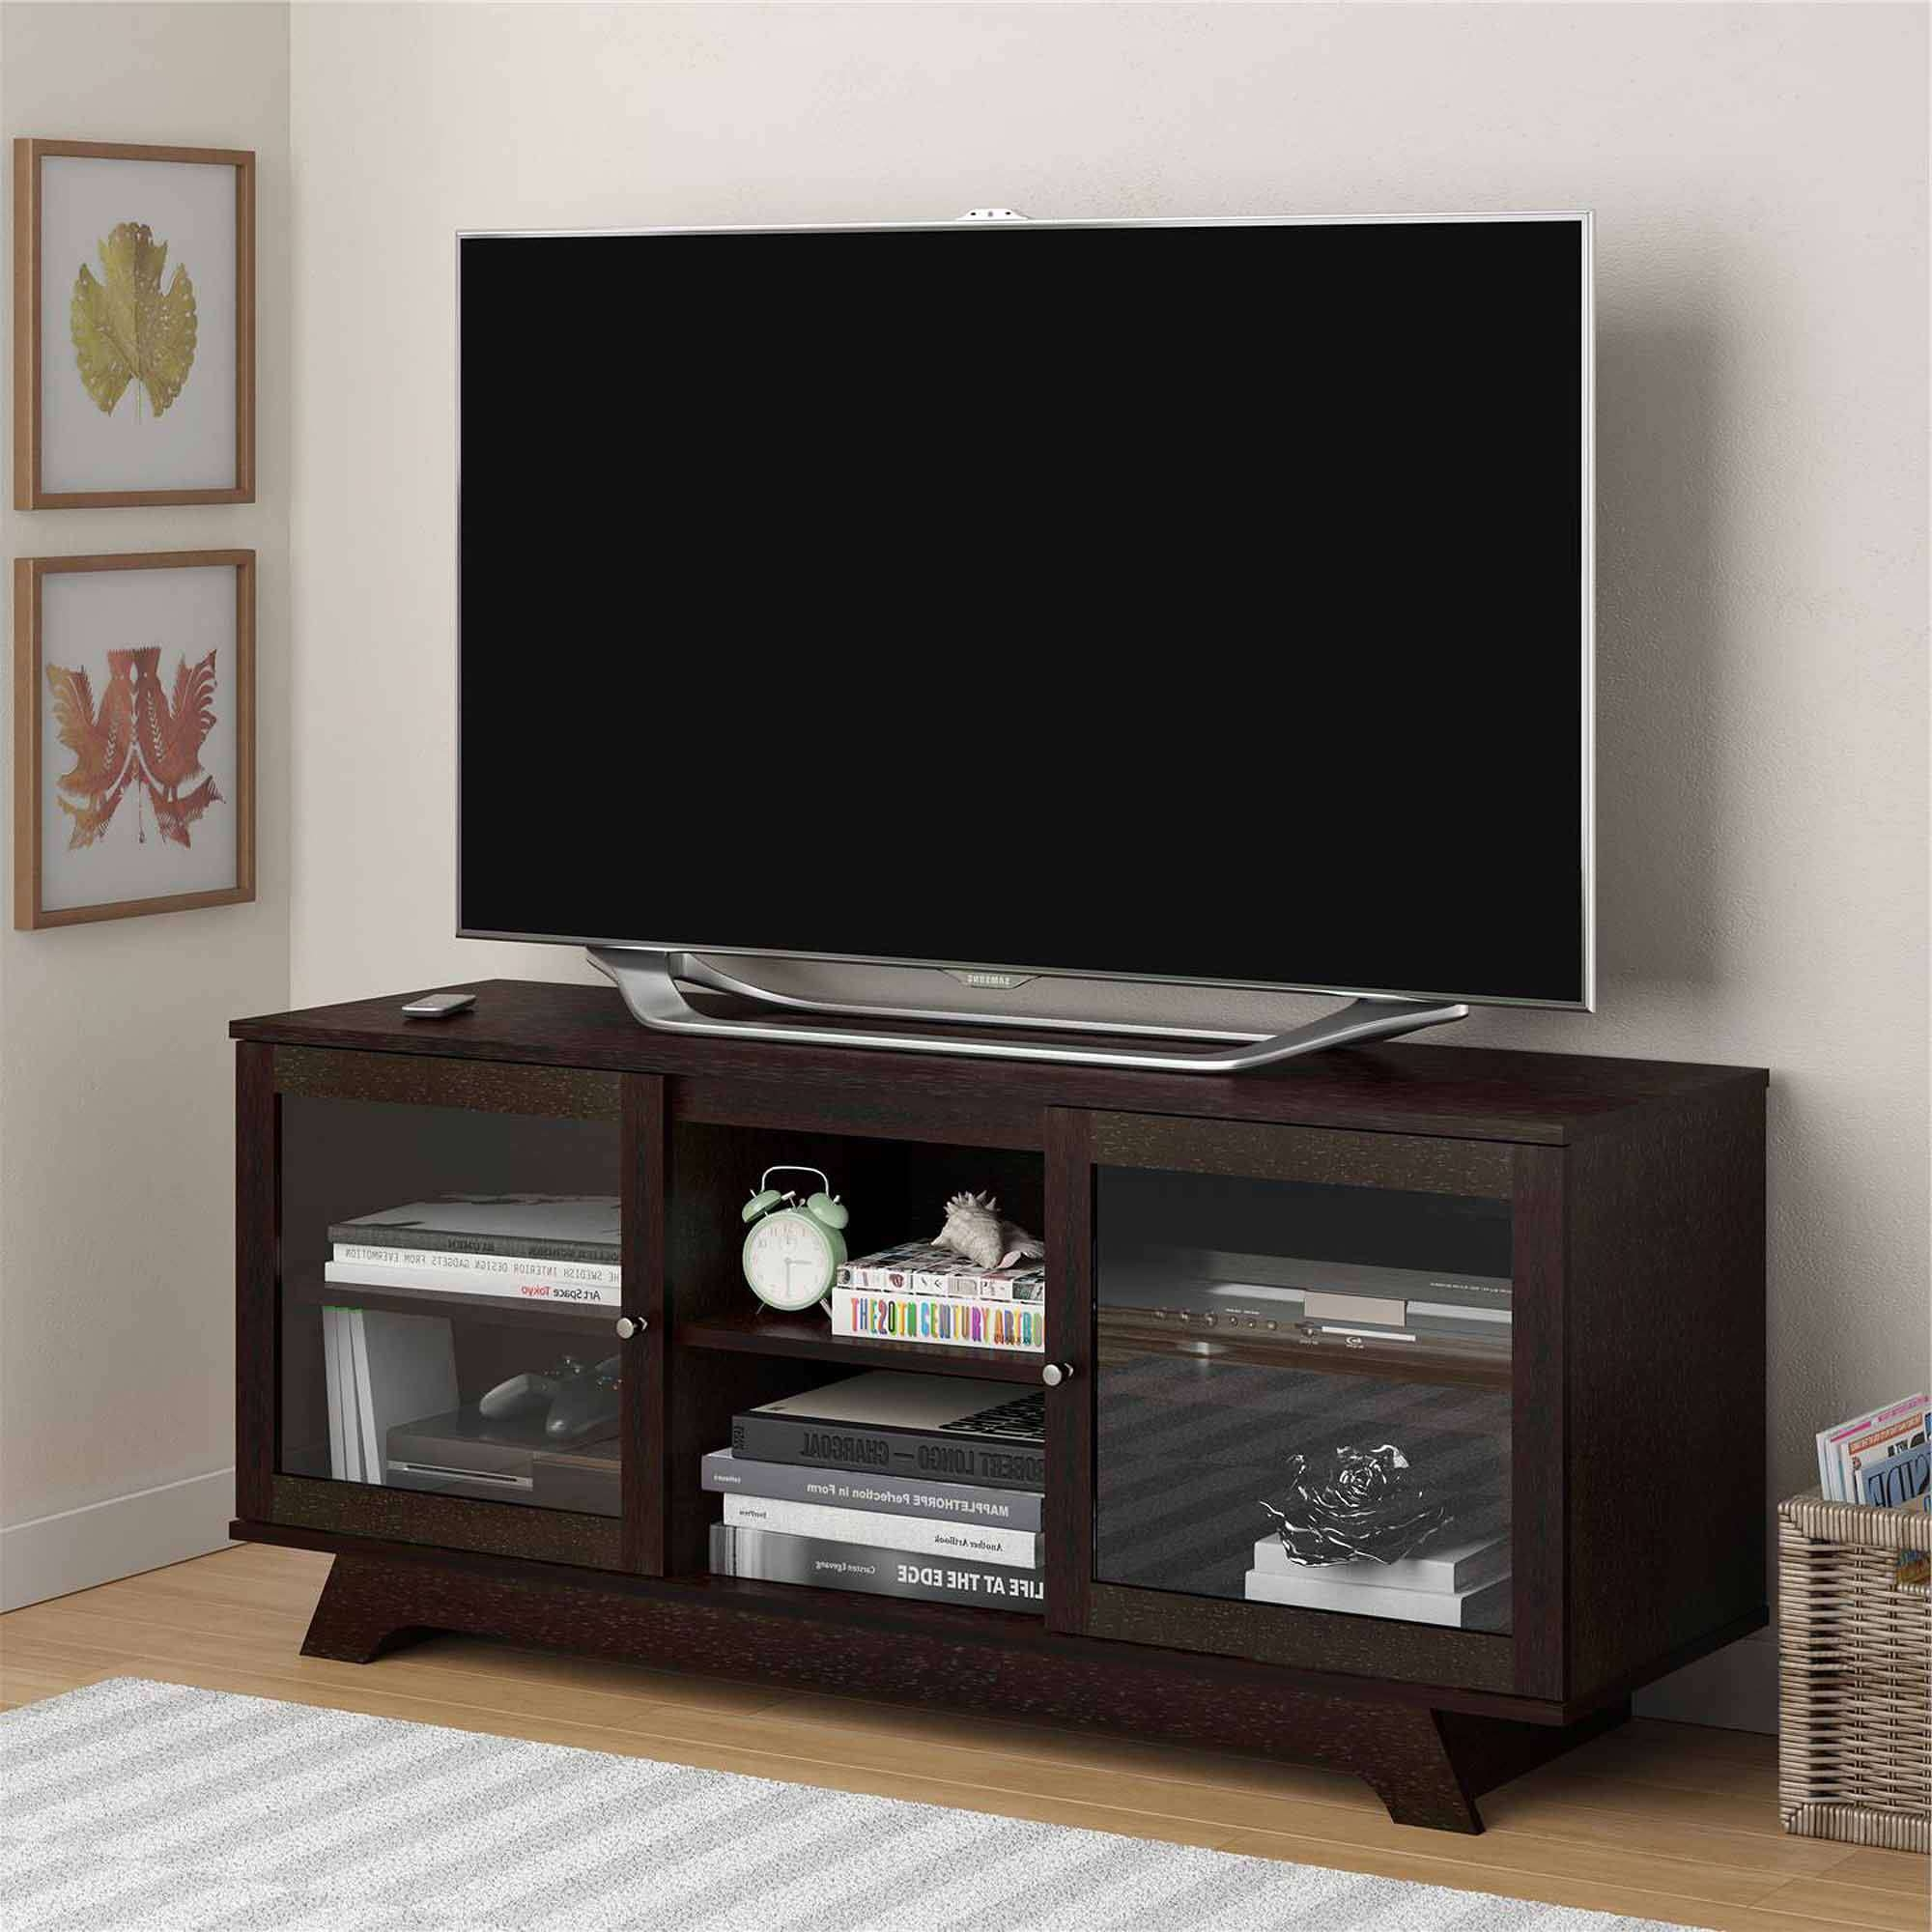 Tv Stands & Entertainment Centers – Walmart Intended For Led Tv Stands (View 5 of 20)